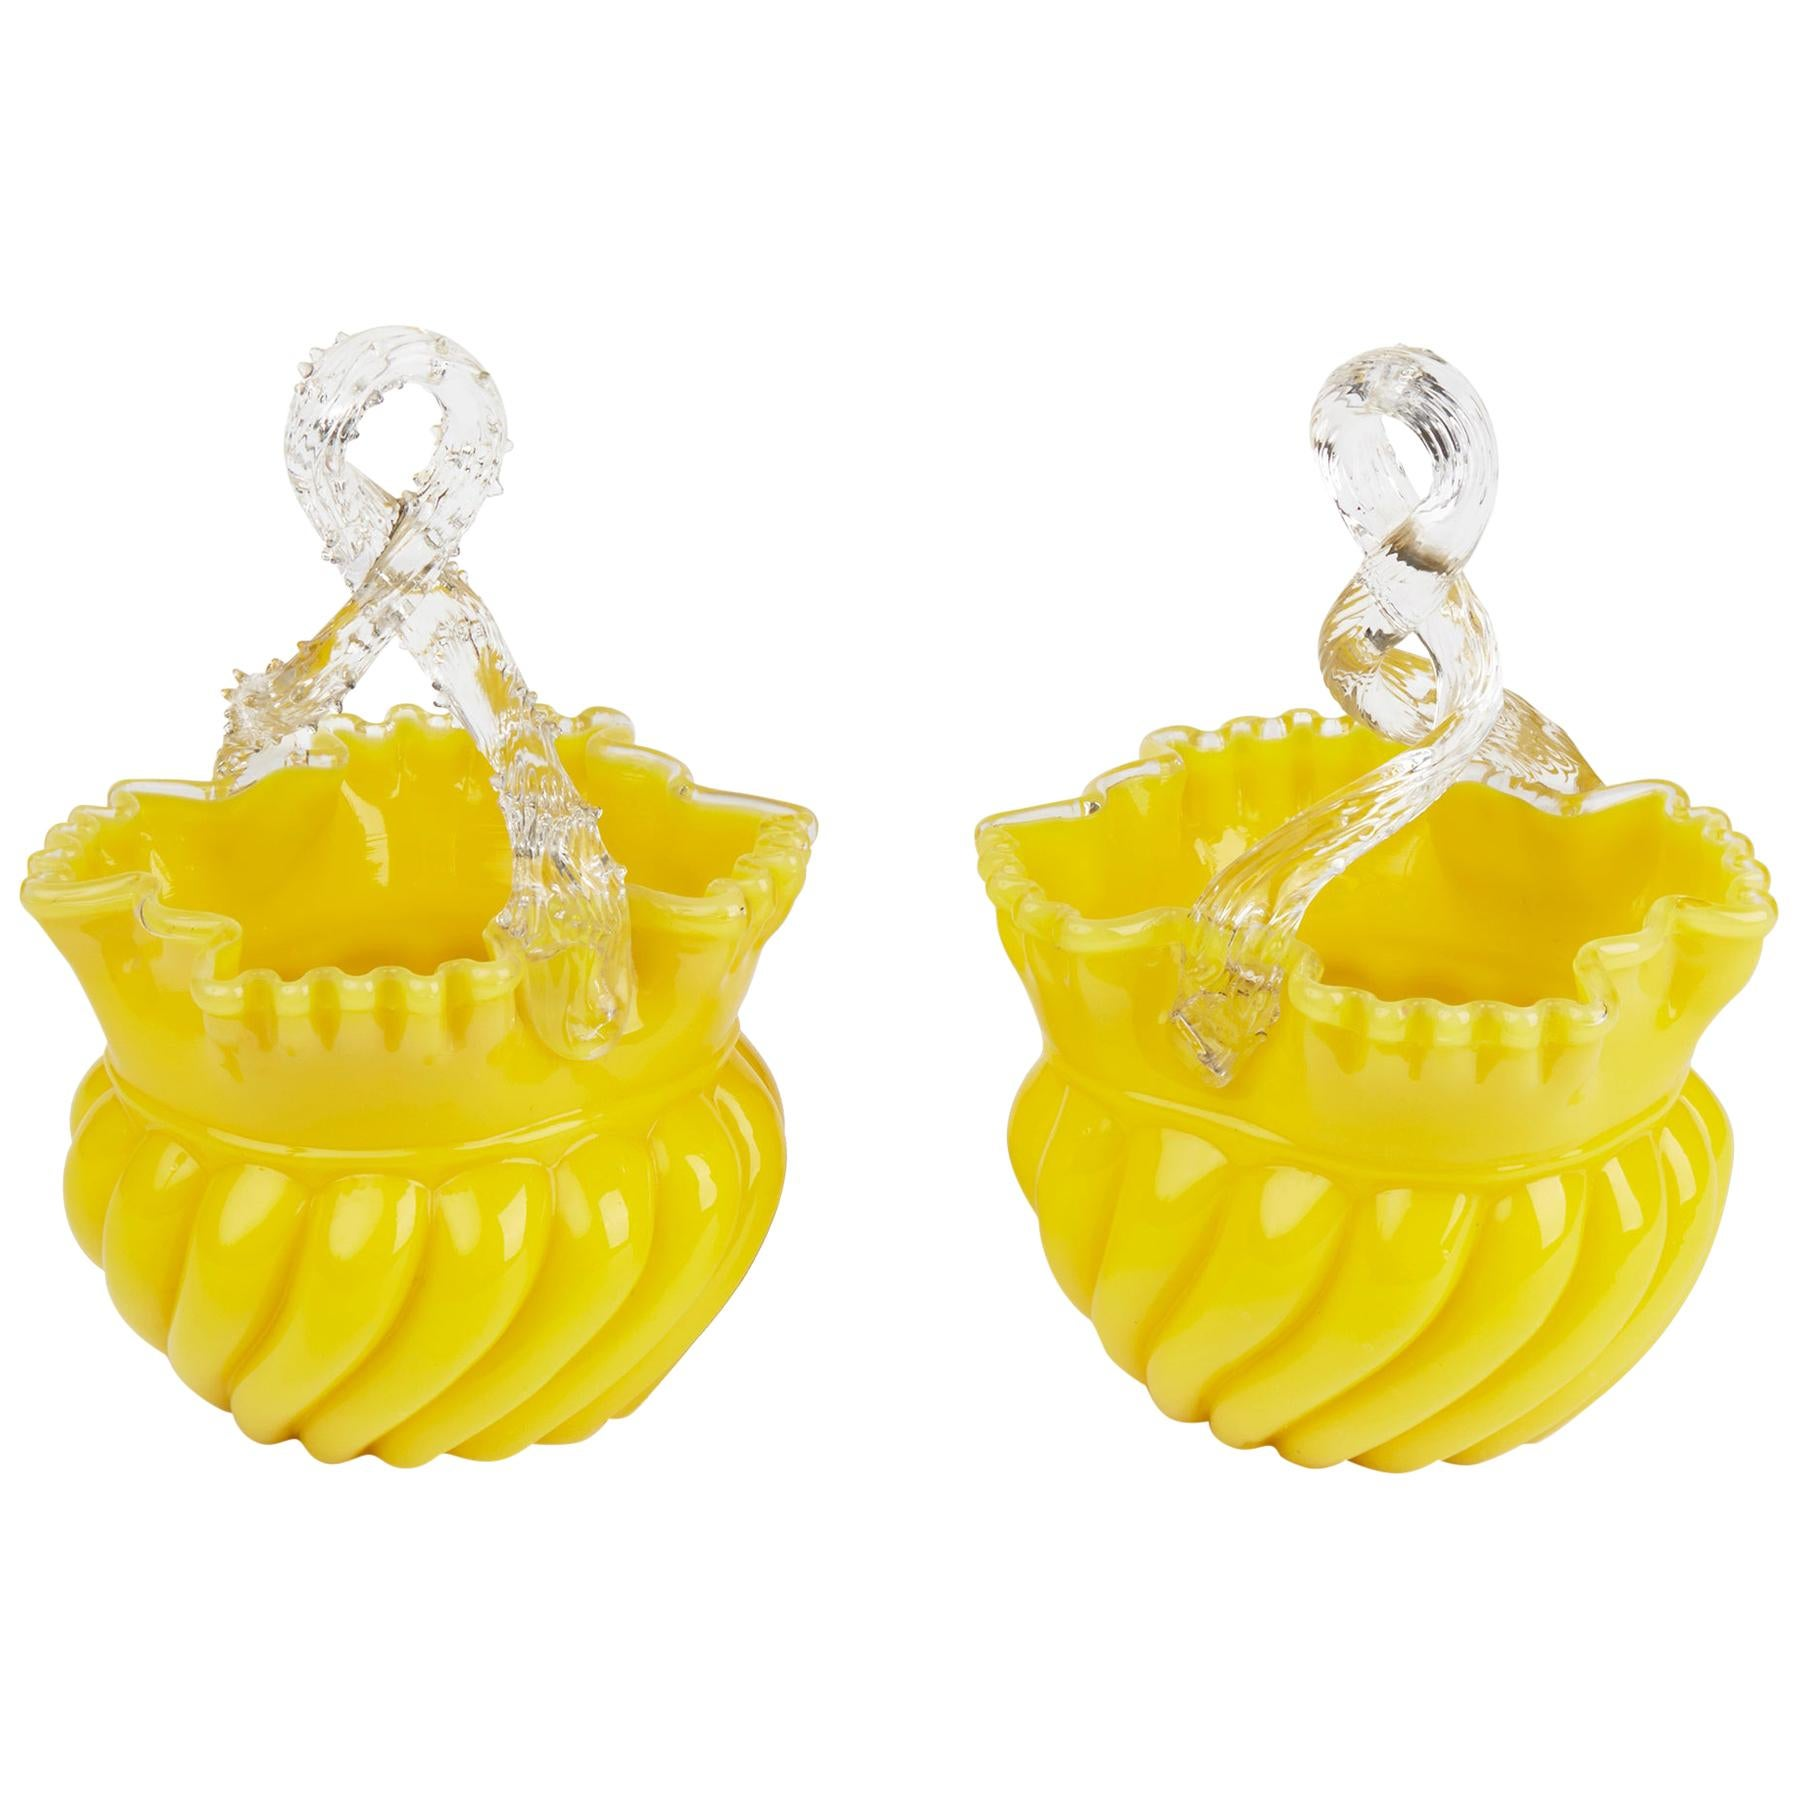 Victorian English Pair of Yellow Glass Handled Posy Baskets